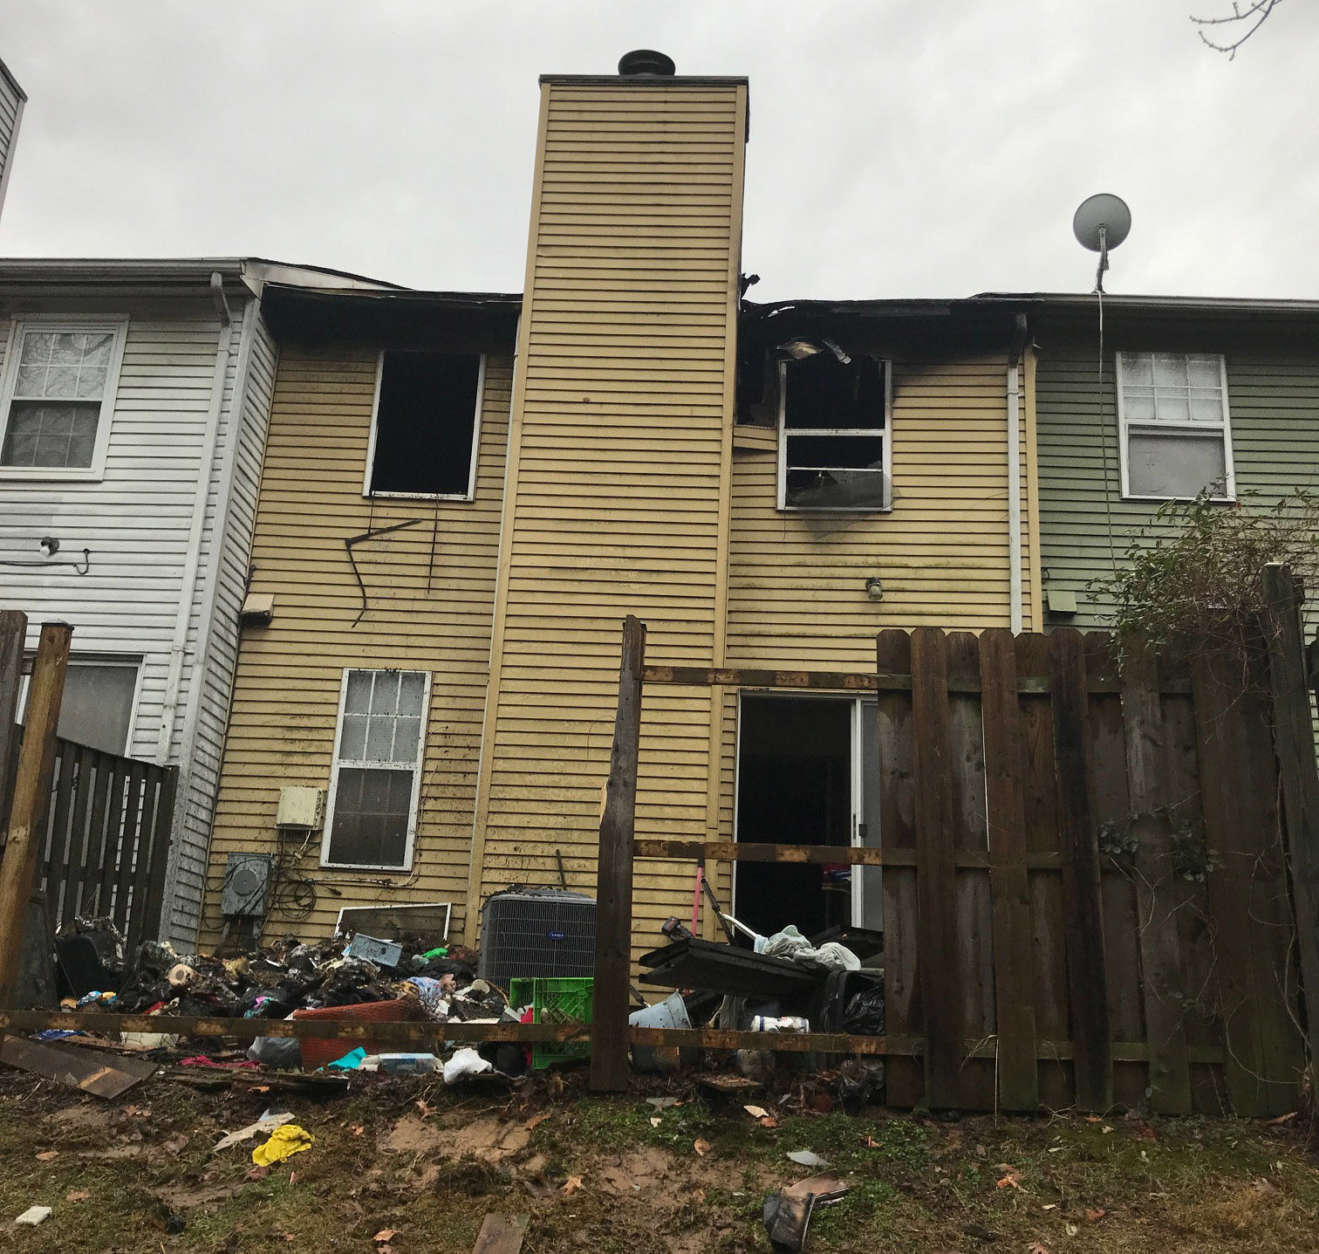 Prince George's County Fire Department is still investigating the cause of the fire, but officials said there were no working smoke alarms in the house. (WTOP/Kyle Cooper)